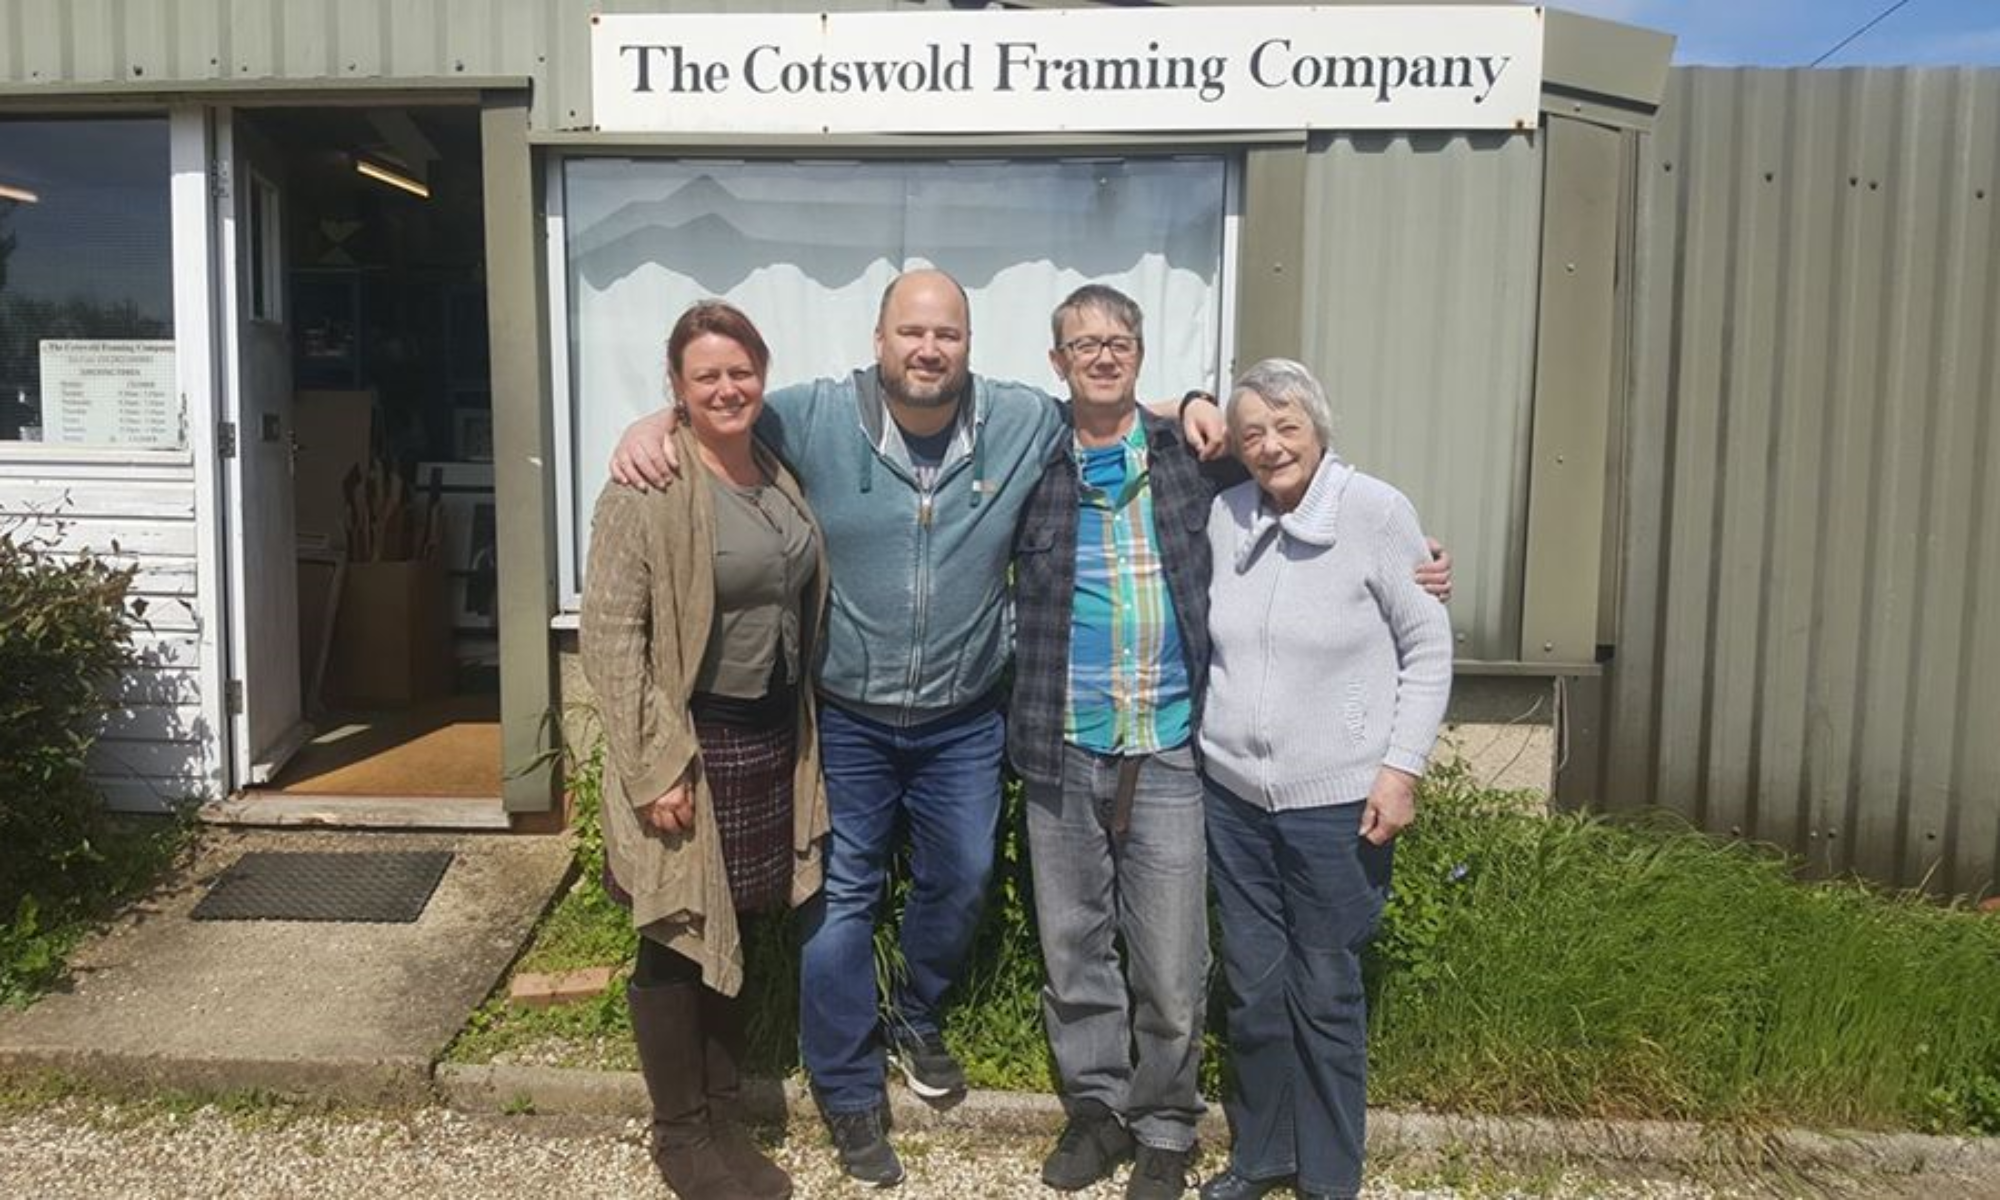 Cotswold Framing Company